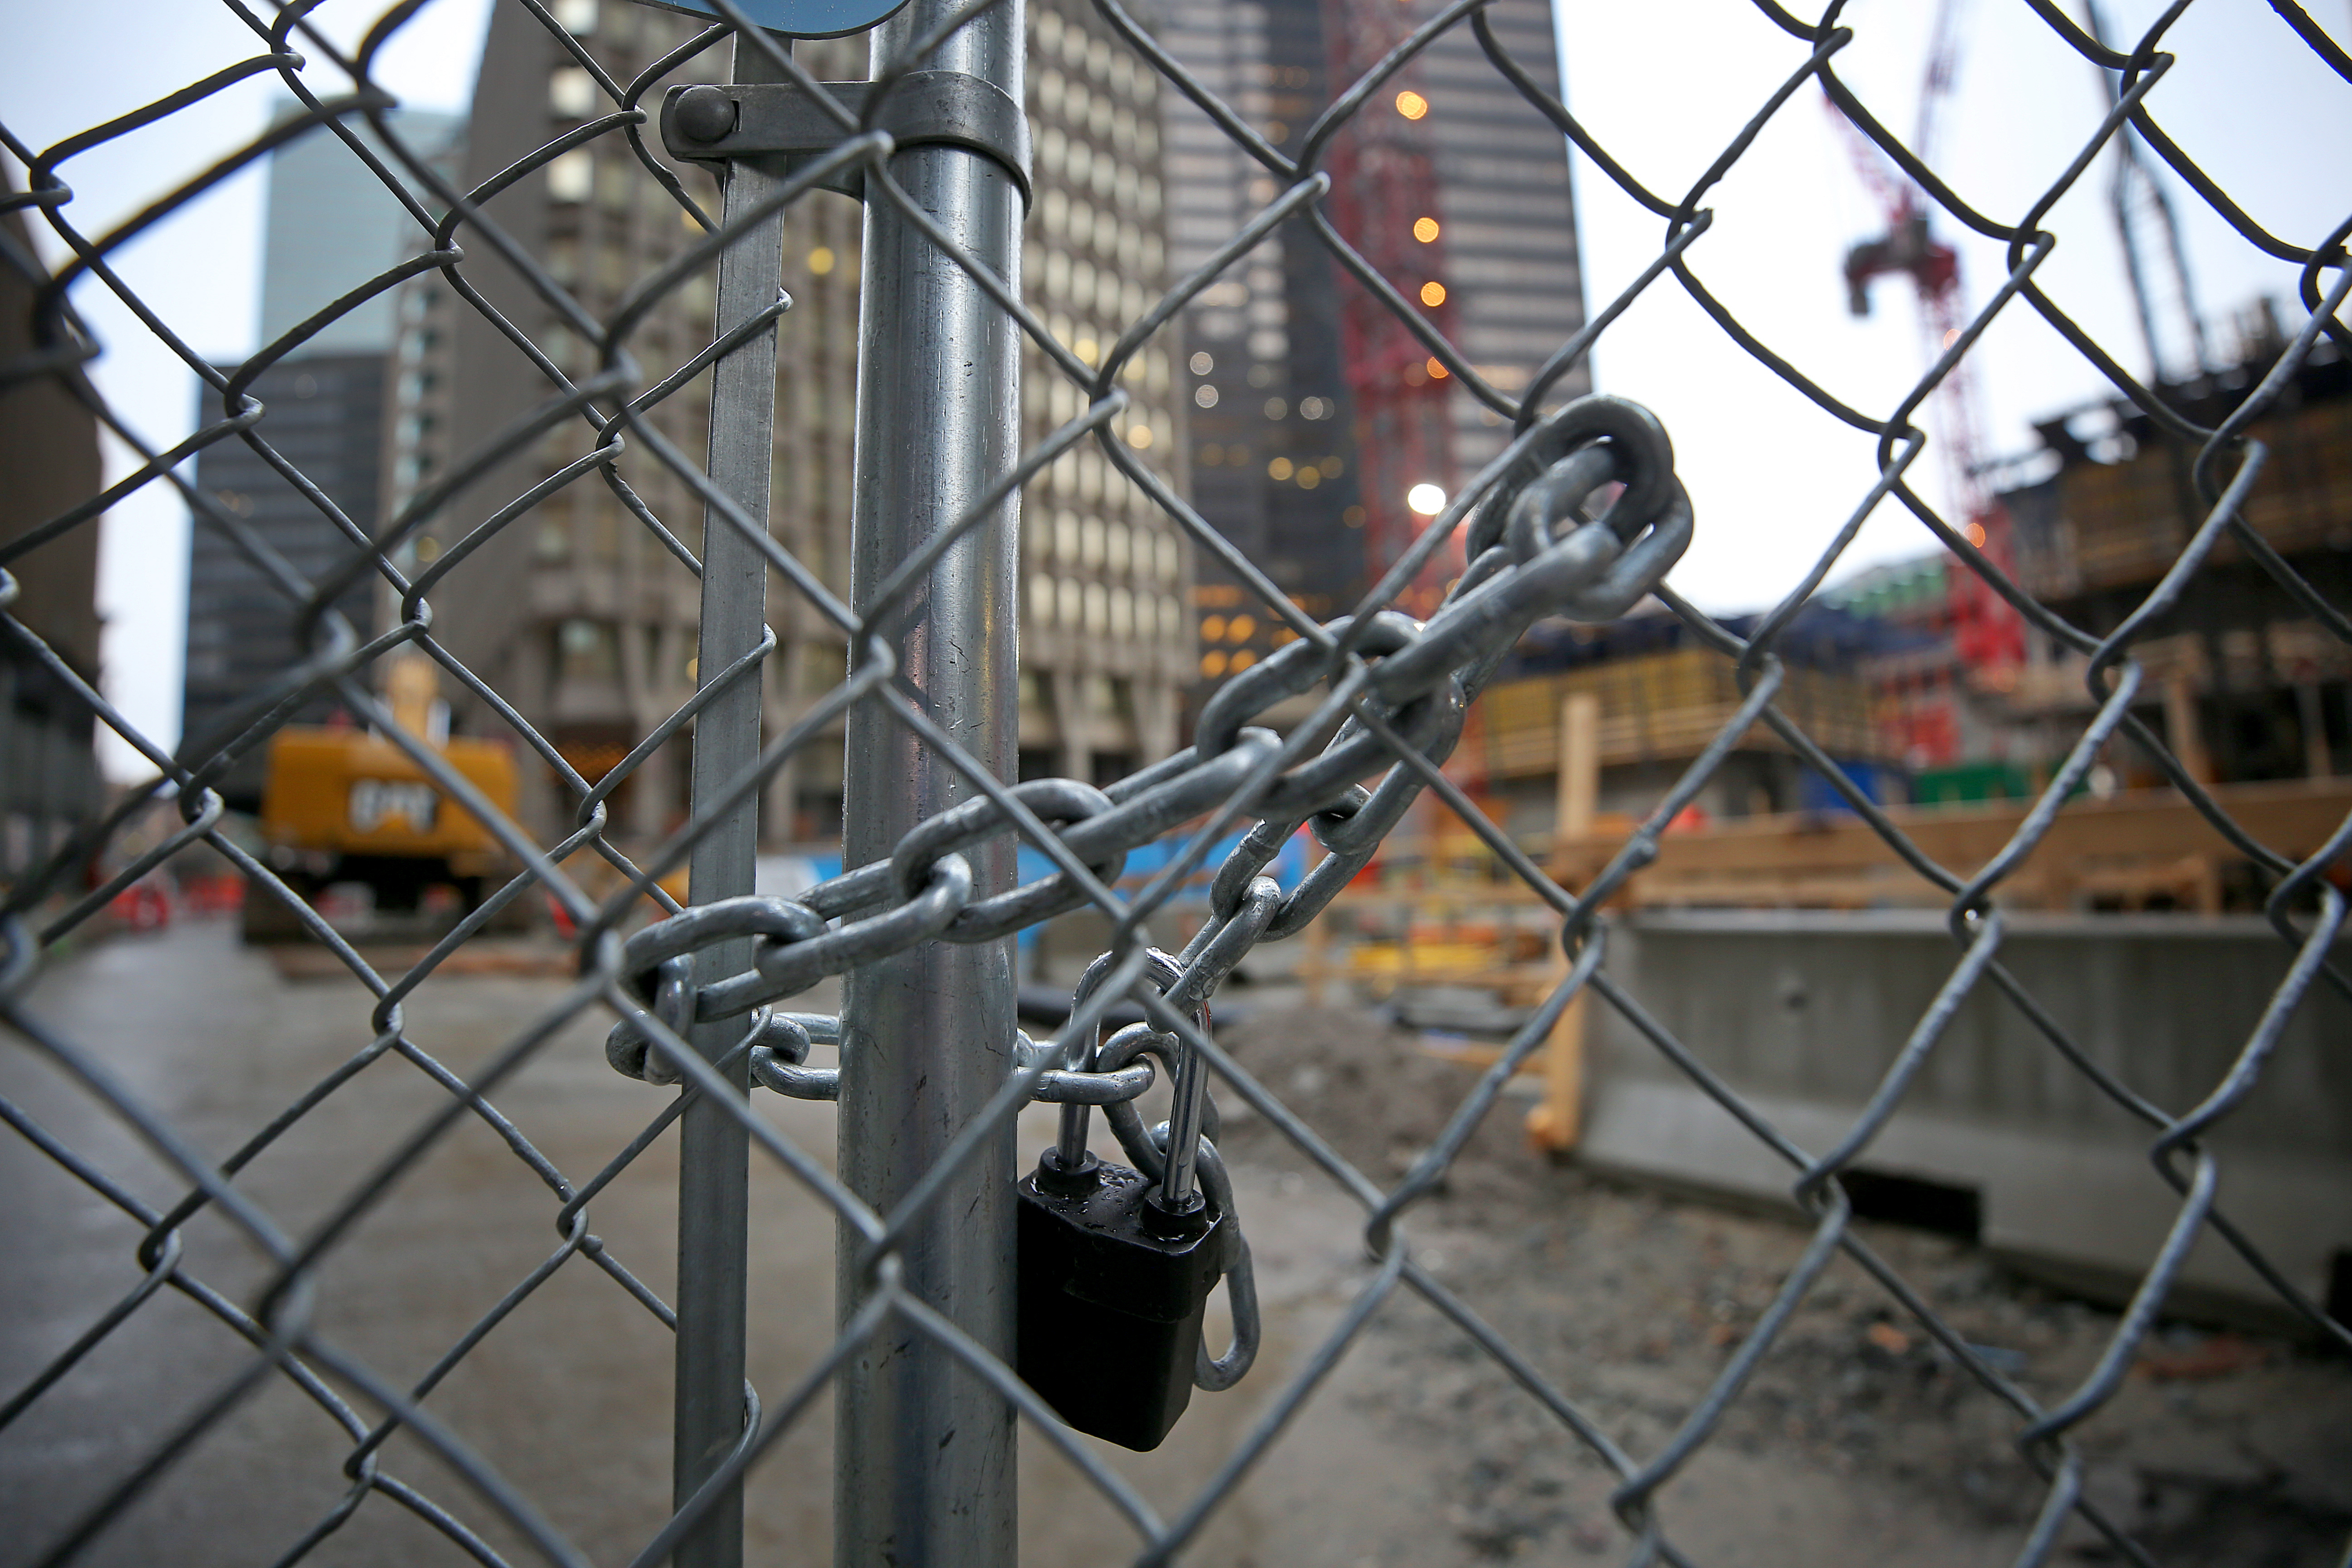 A locked chain around a chain-linked fence surrounding a construction site.